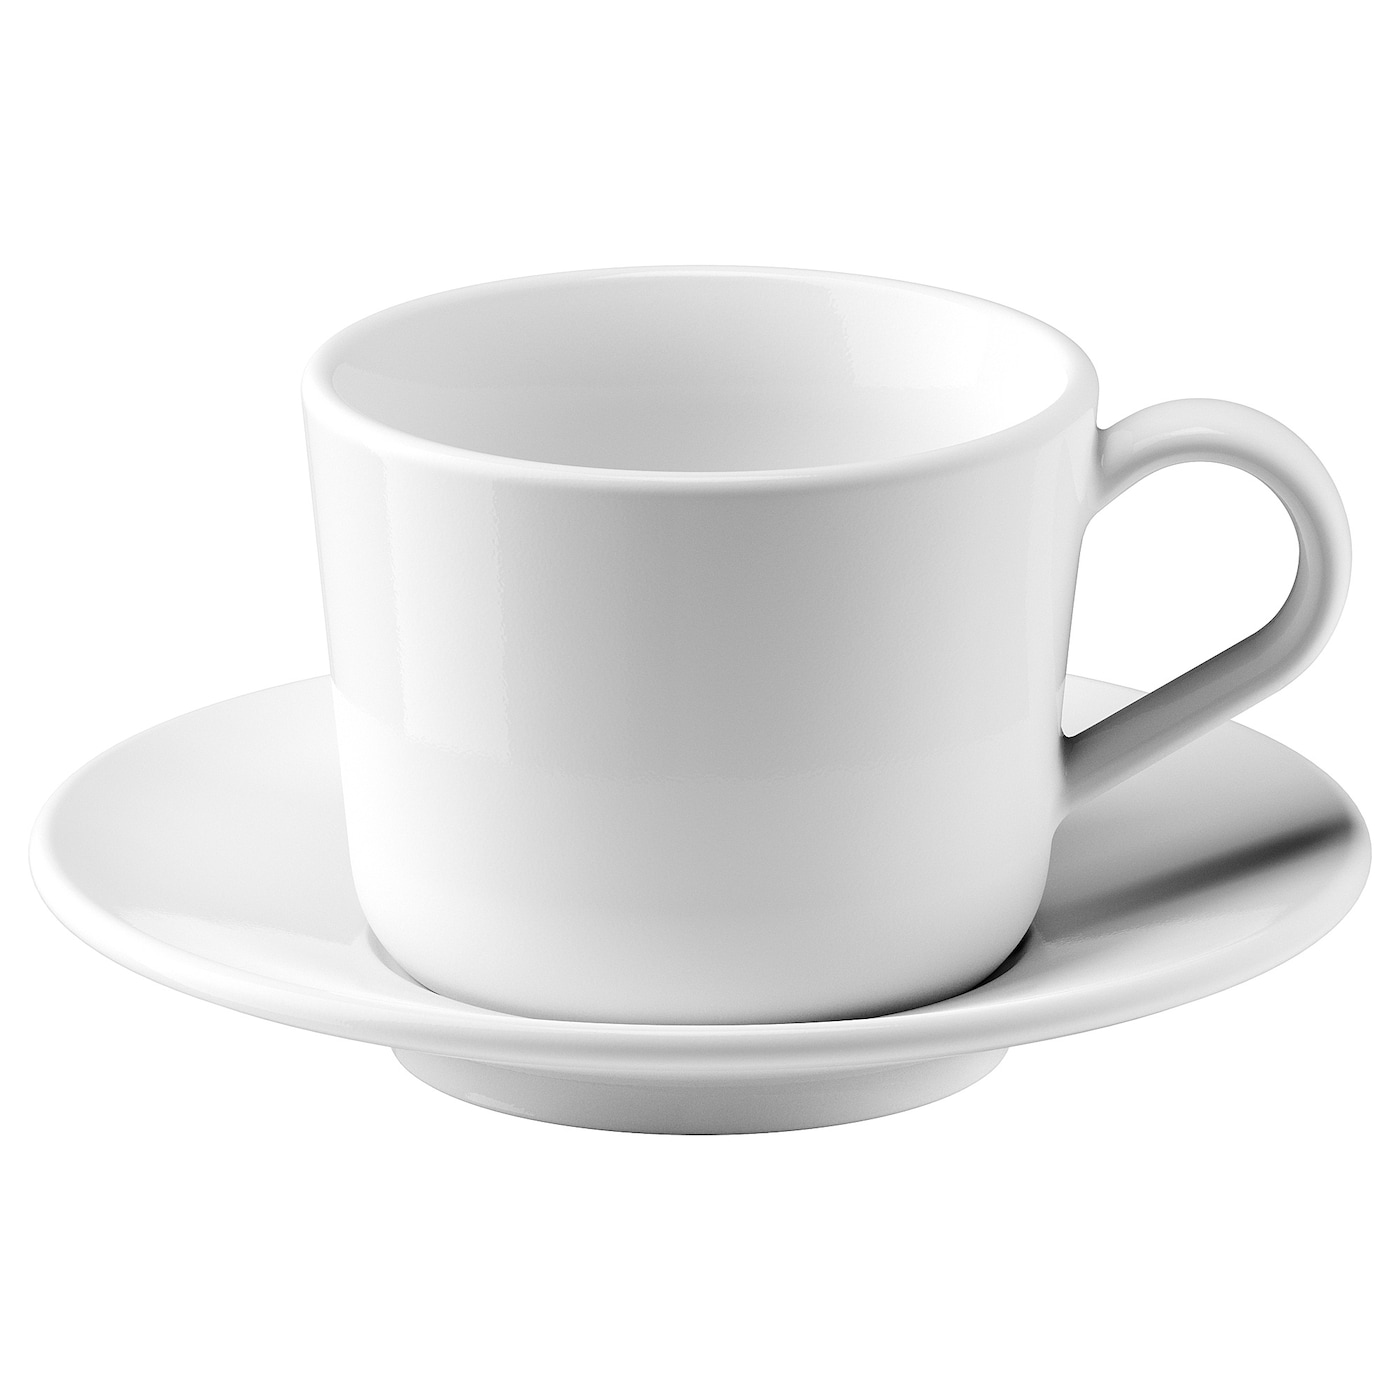 Ikea 365 White Cup With Saucer Ikea